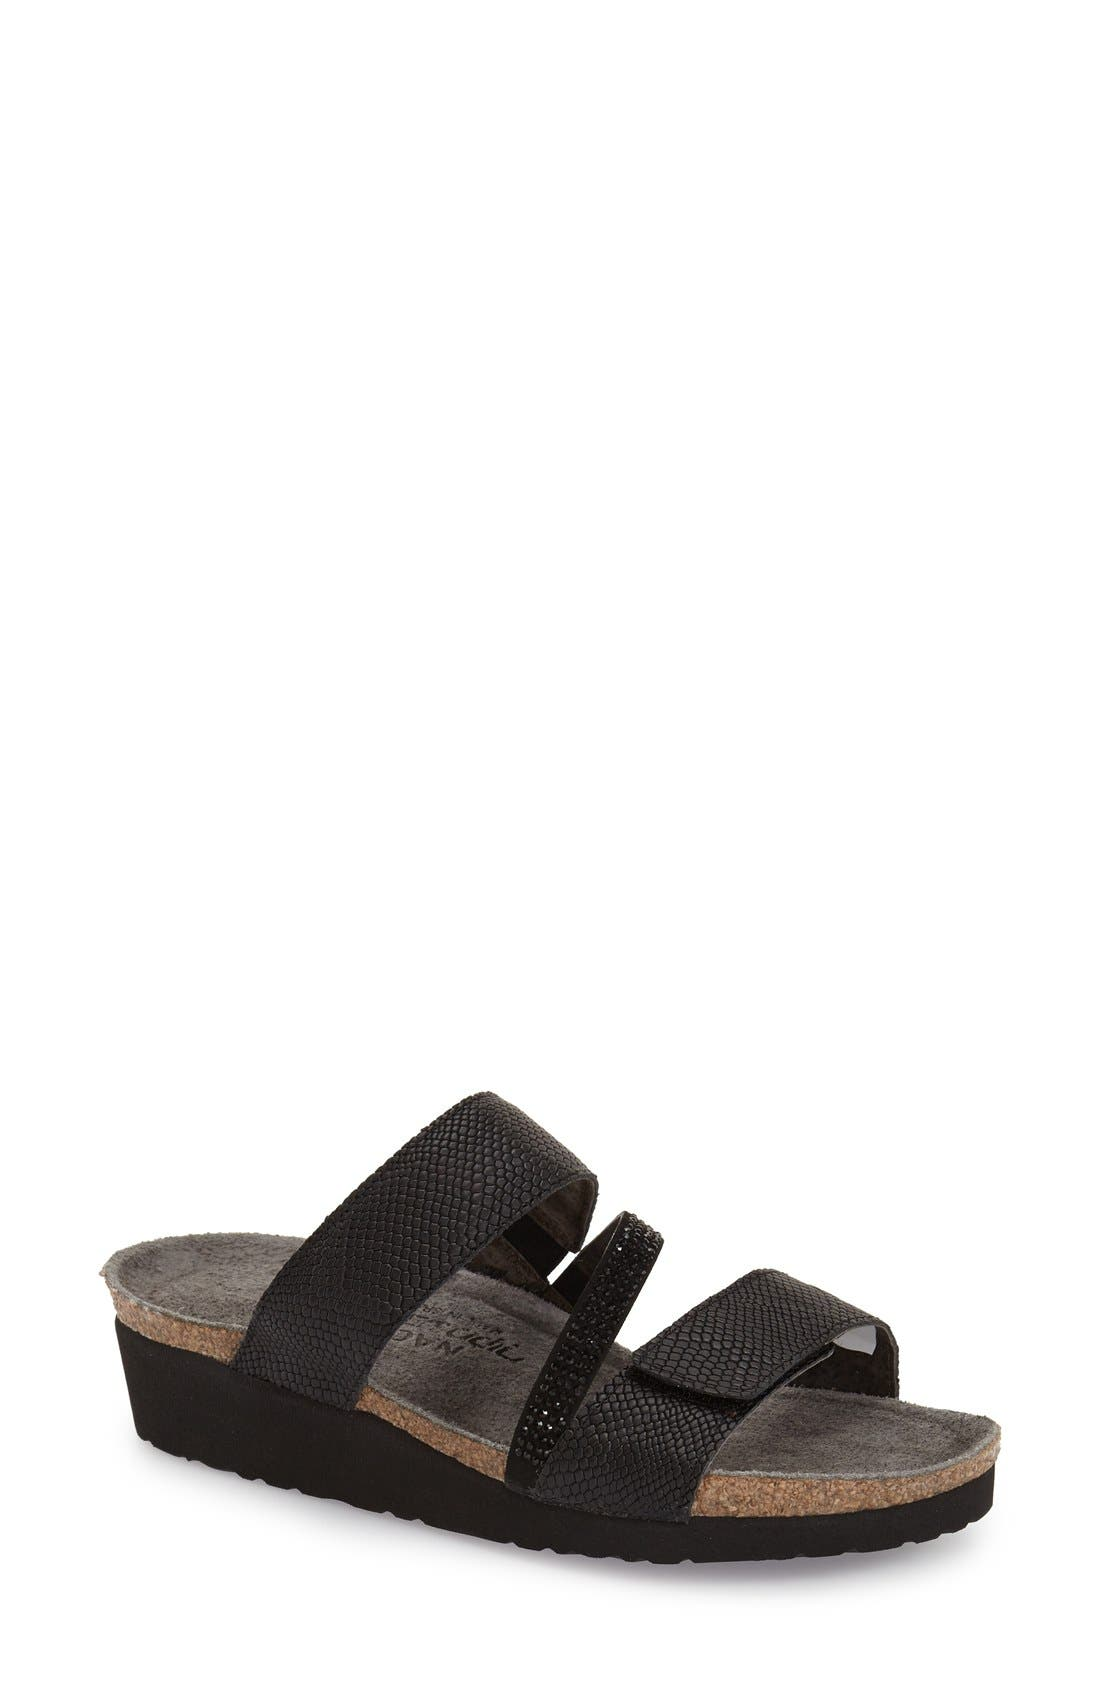 'Sheryl' Crystal Embellished Sandal,                         Main,                         color, BLACK SNAKE LEATHER